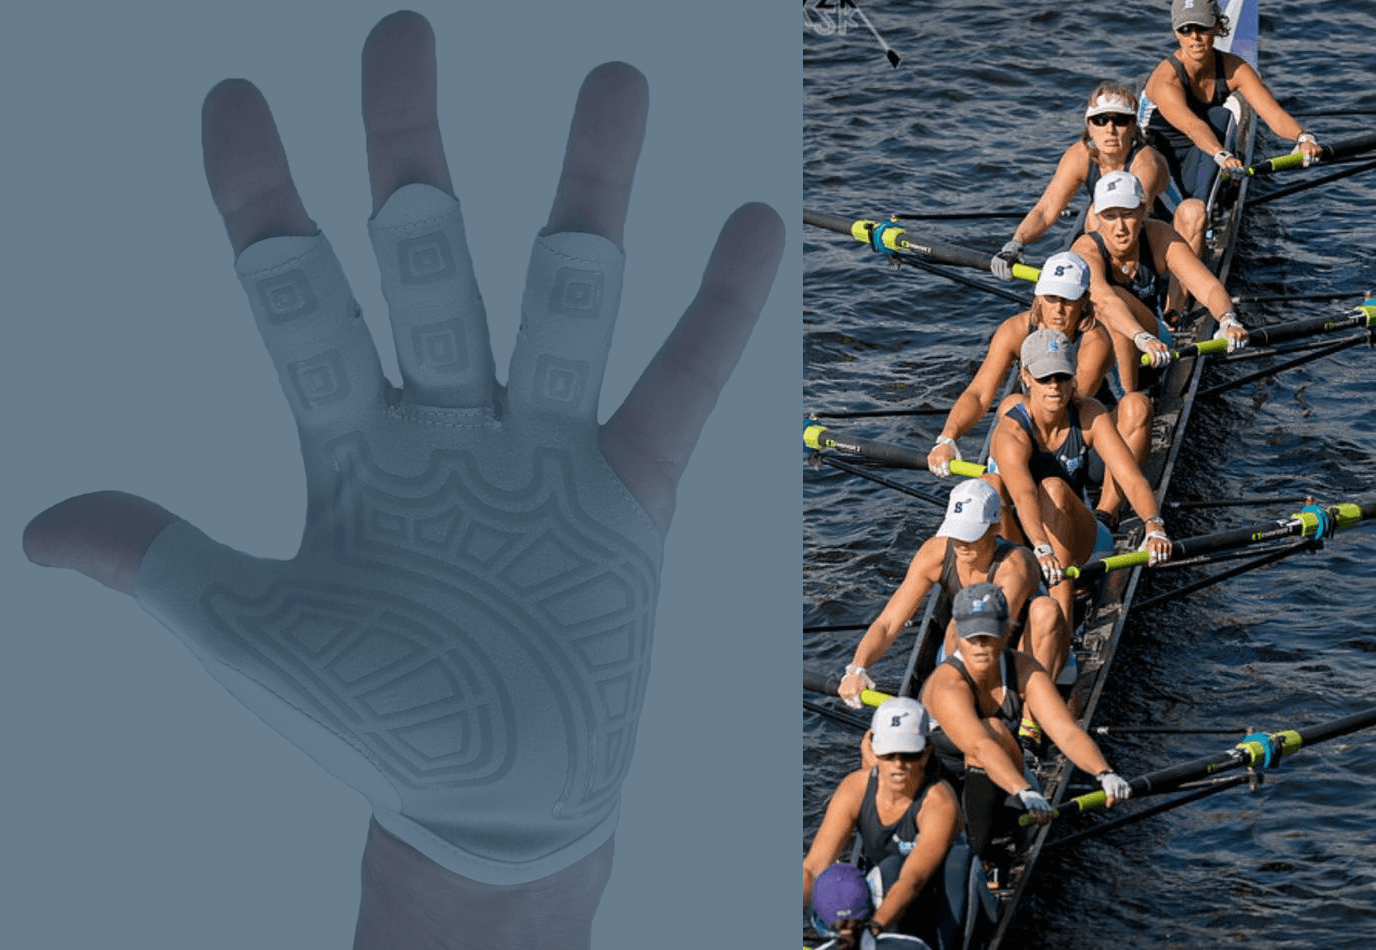 rowing glove on oar